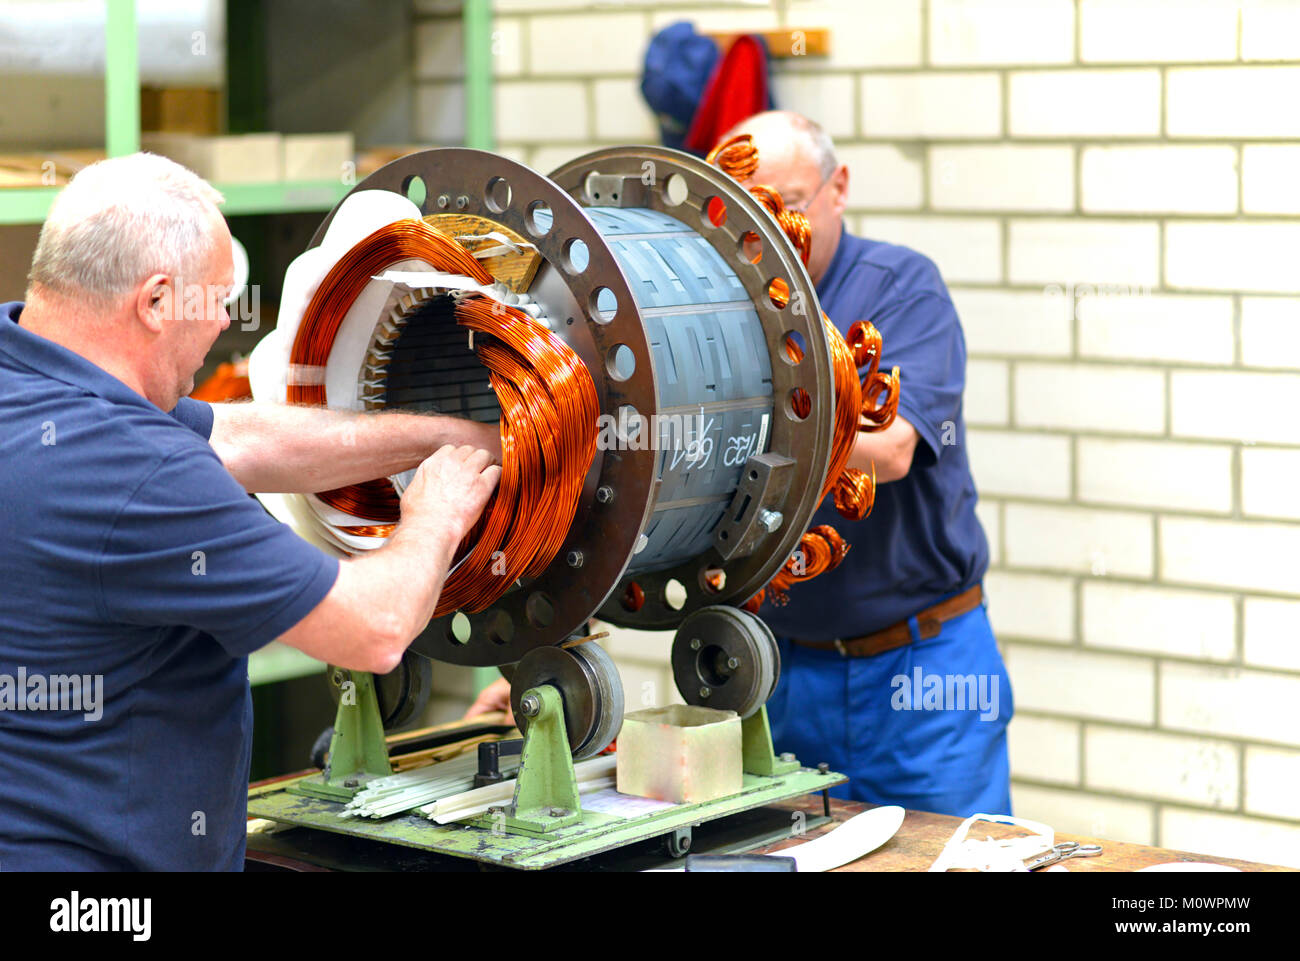 Workers in a factory assemble electric motors - Stock Image